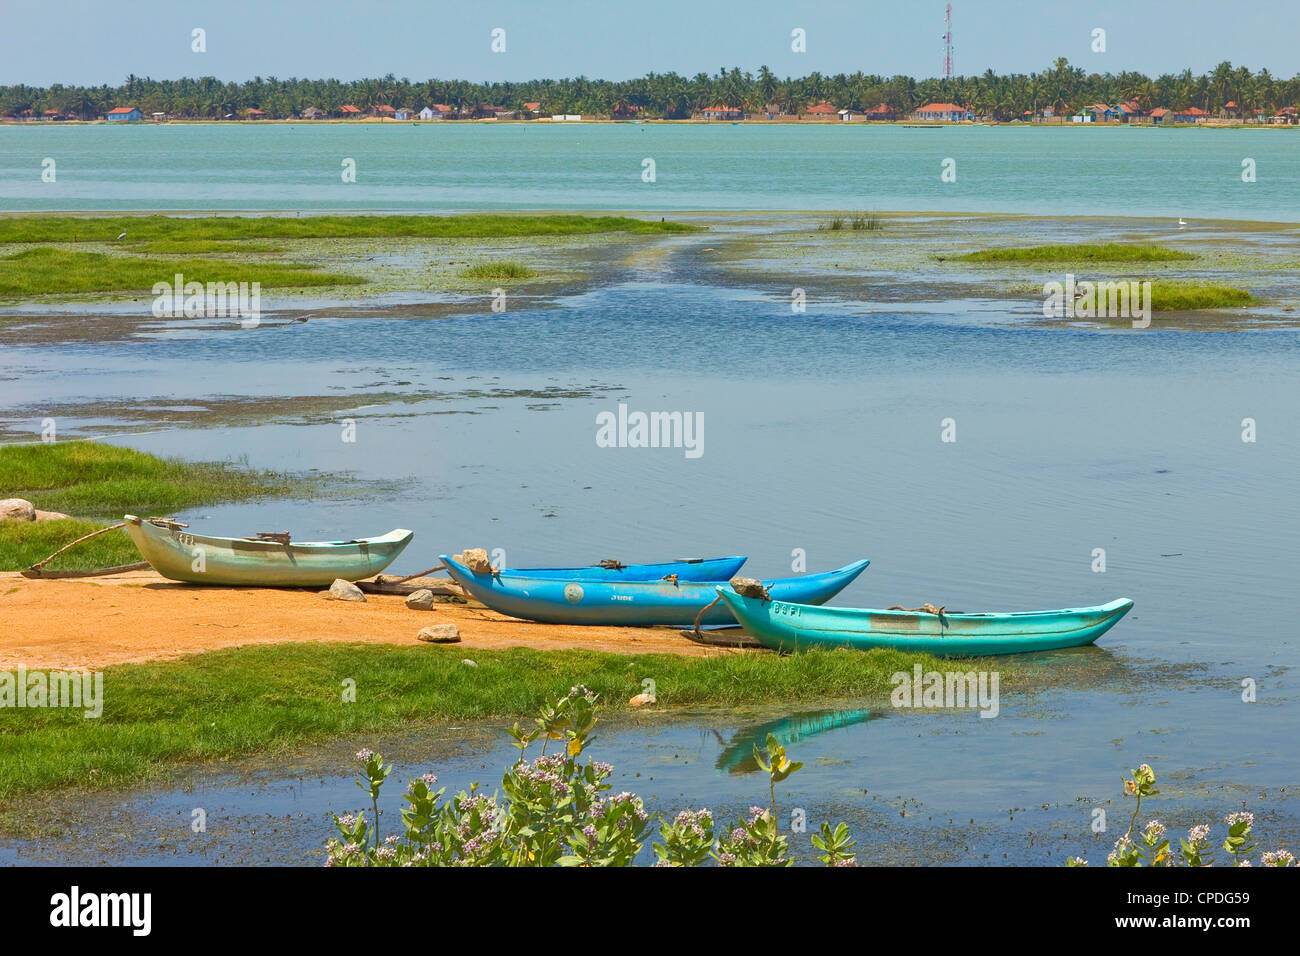 Canoes by Arugam Lagoon, known for its wildlife, Pottuvil, Arugam Bay, Eastern Province, Sri Lanka, Asia - Stock Image